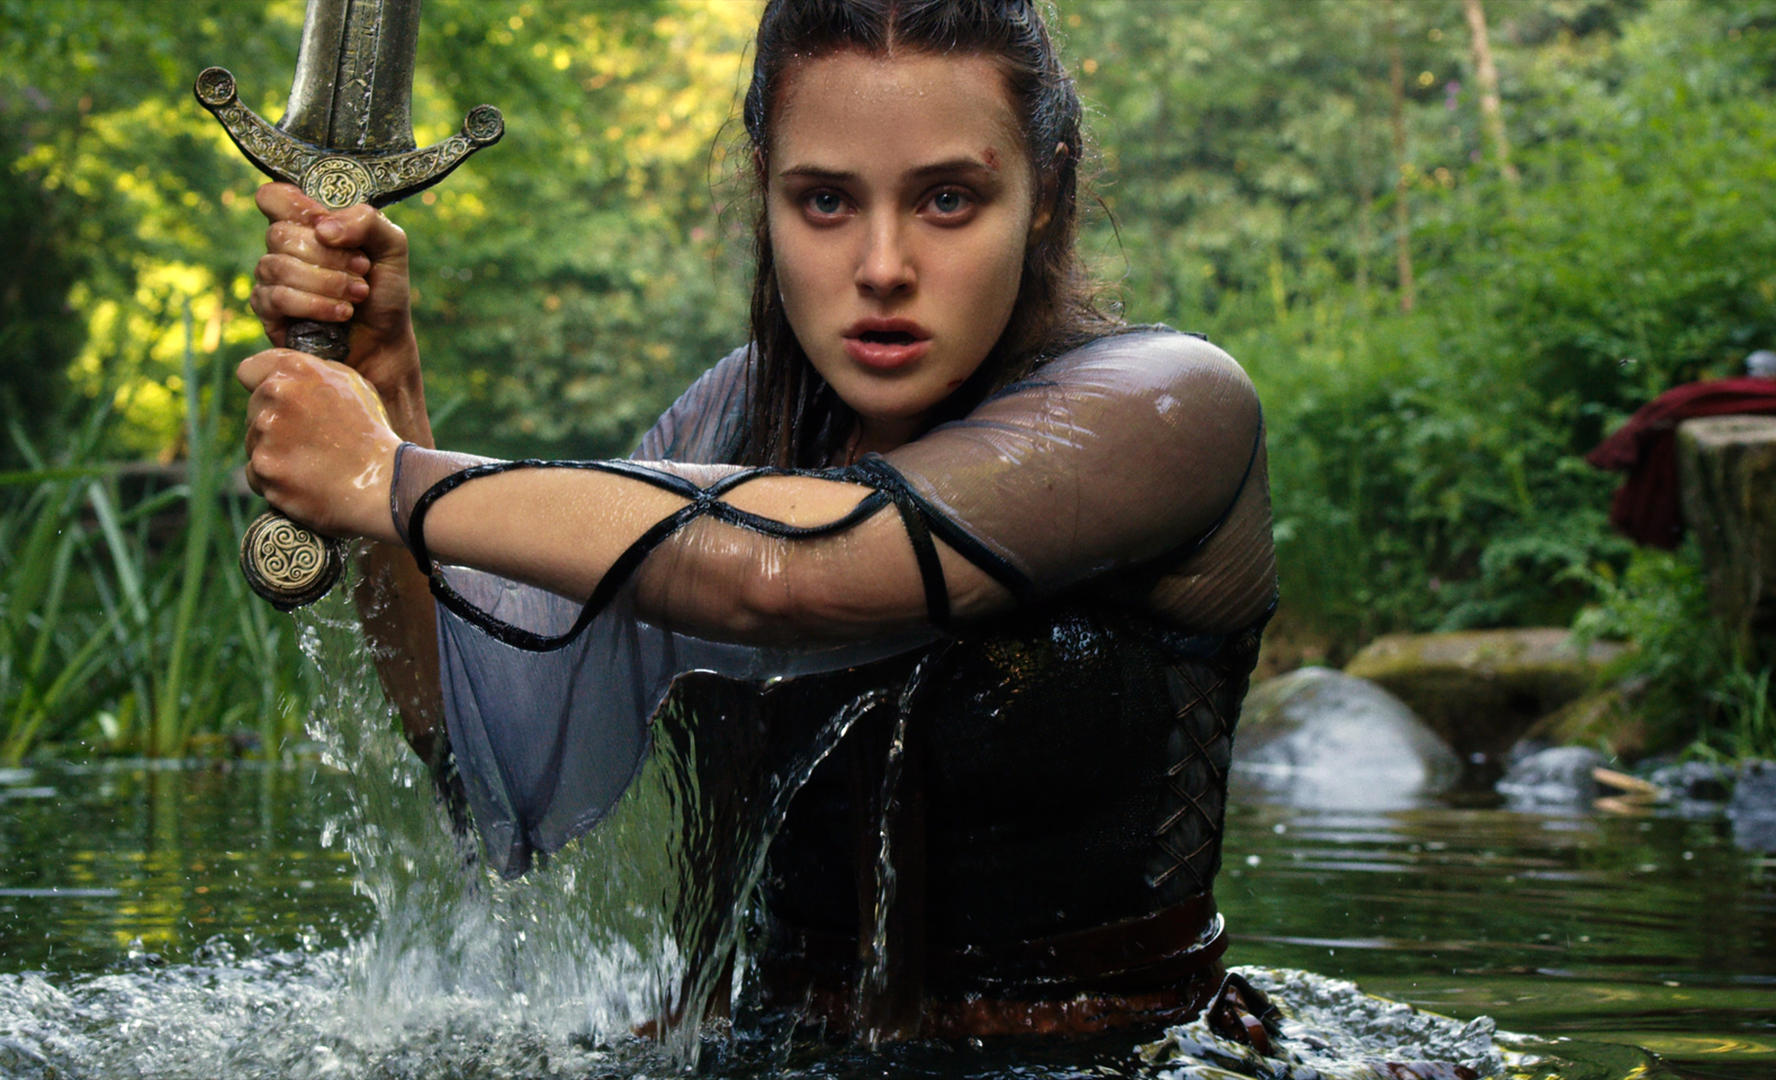 A First Look At The Lady Of The Lake On Her Own Epic Adventure In Netflix's Cursed